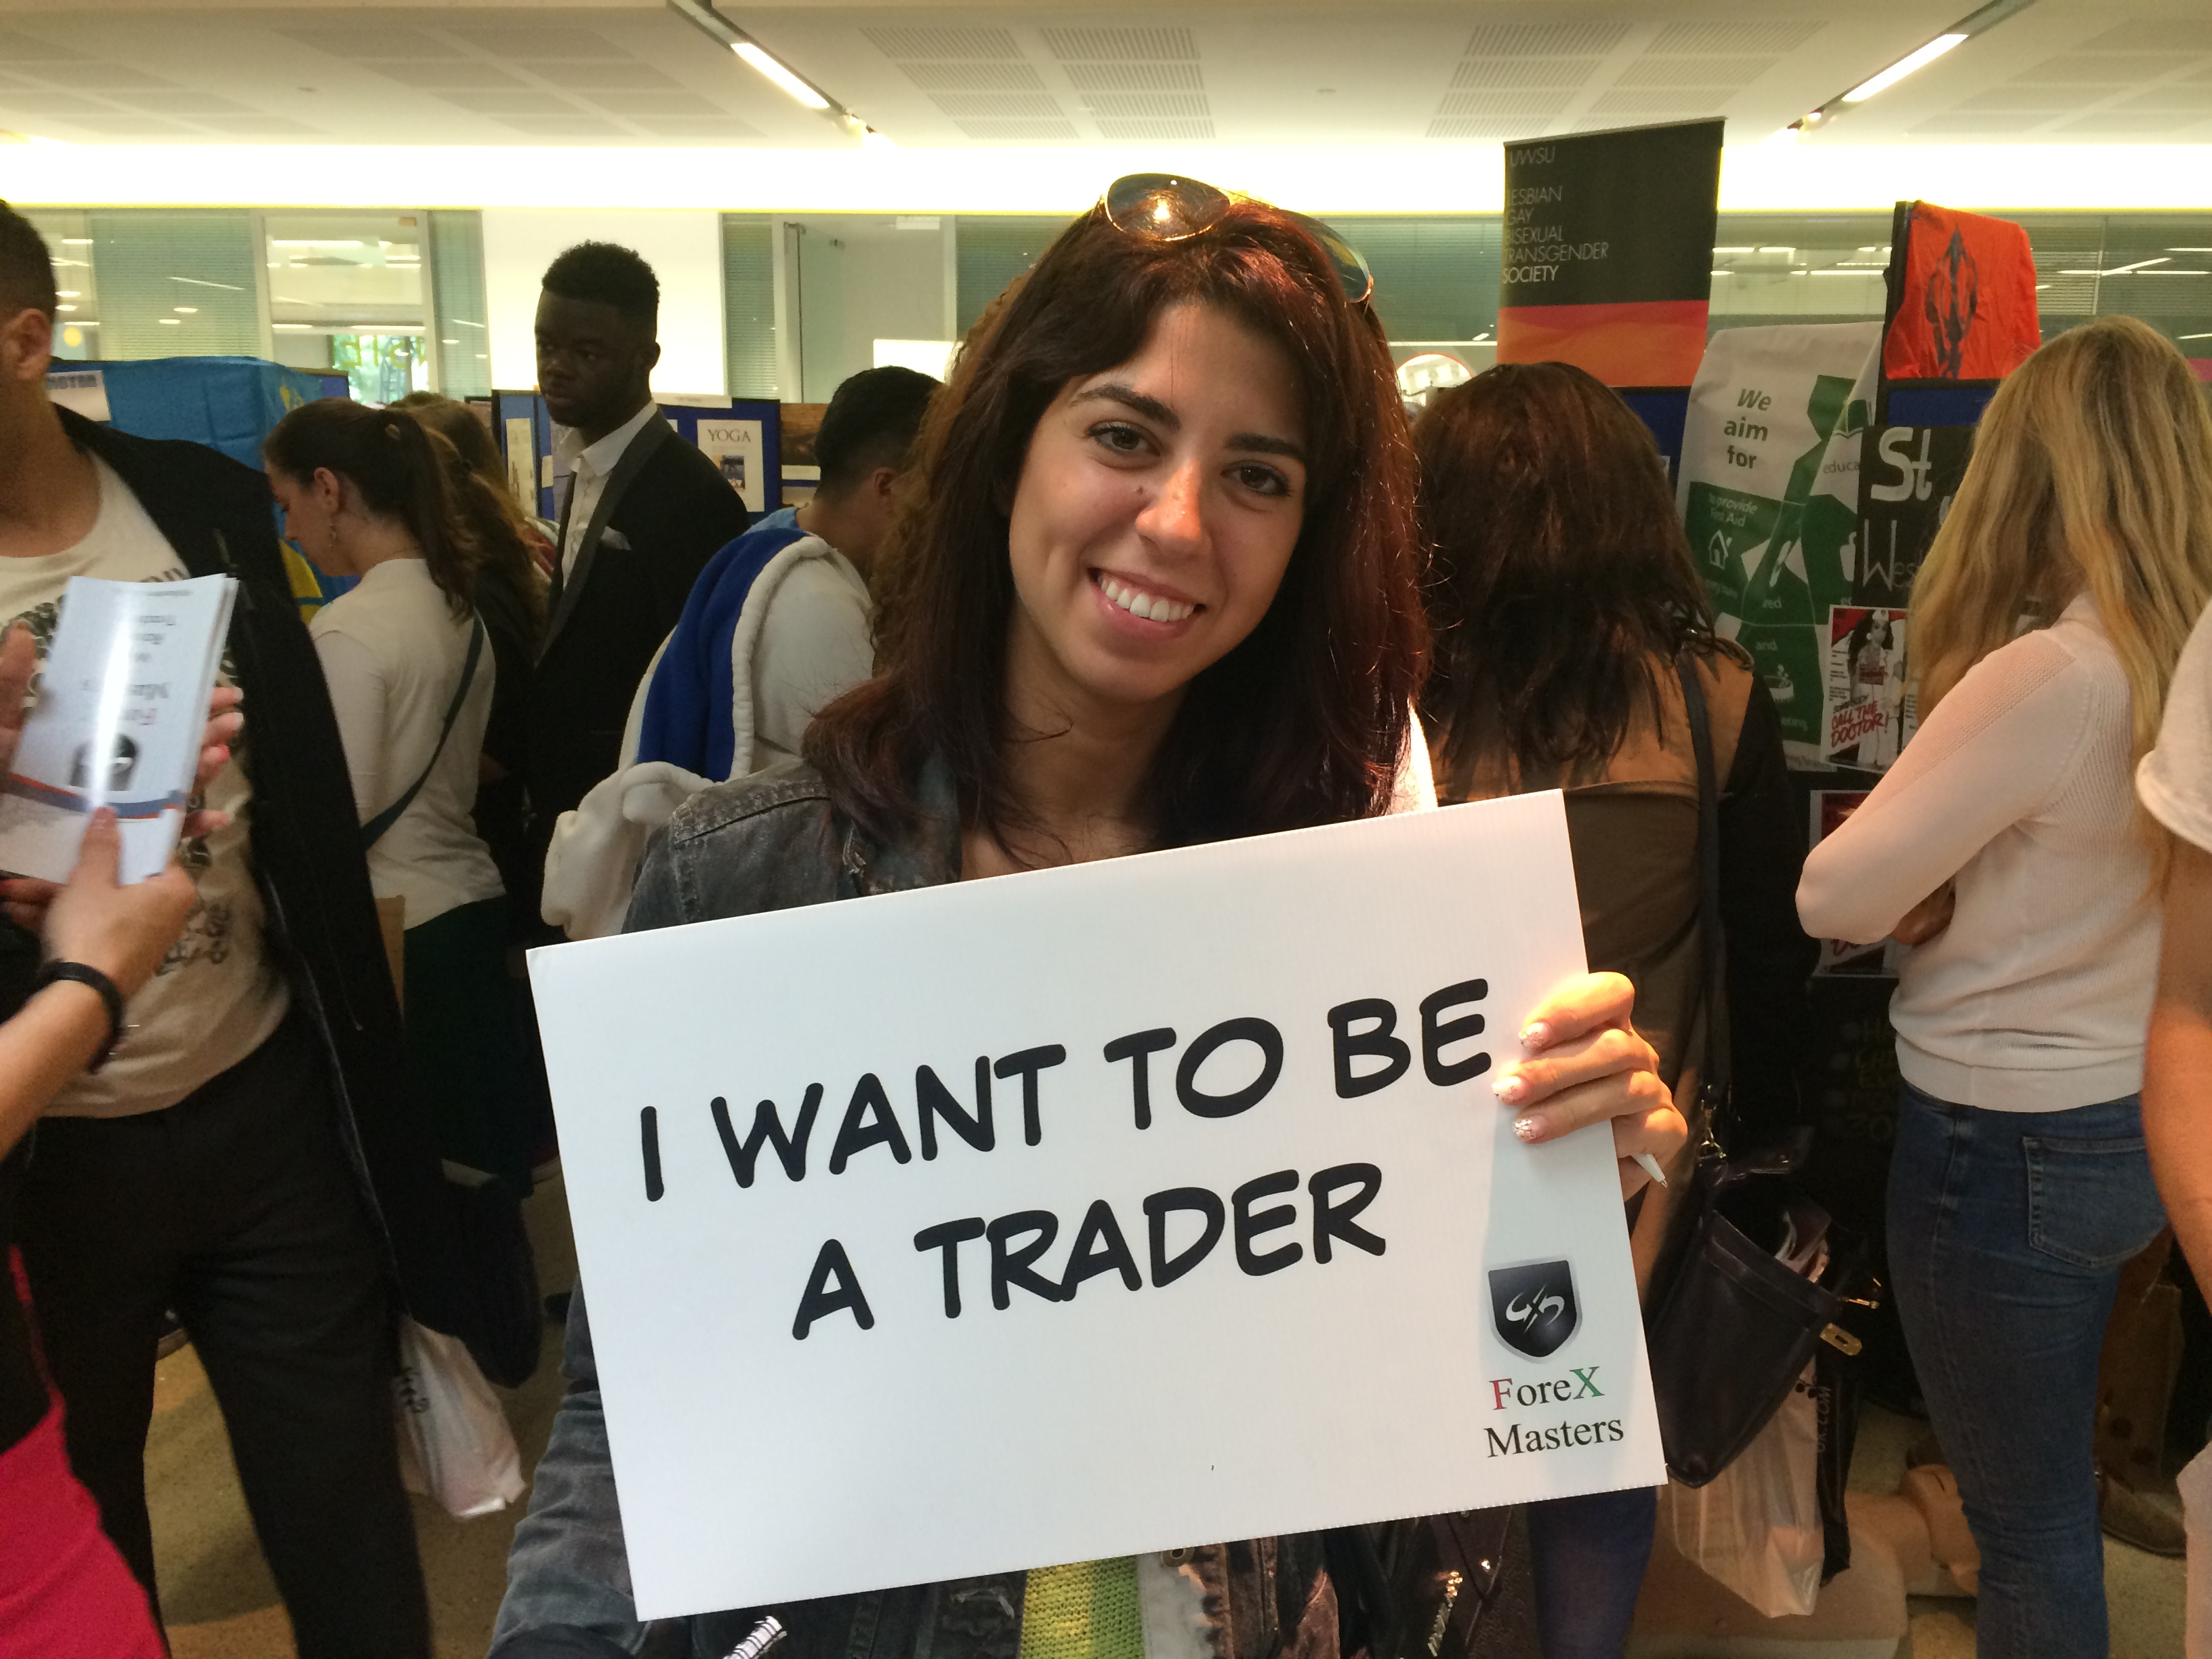 University of Westminster - Traders